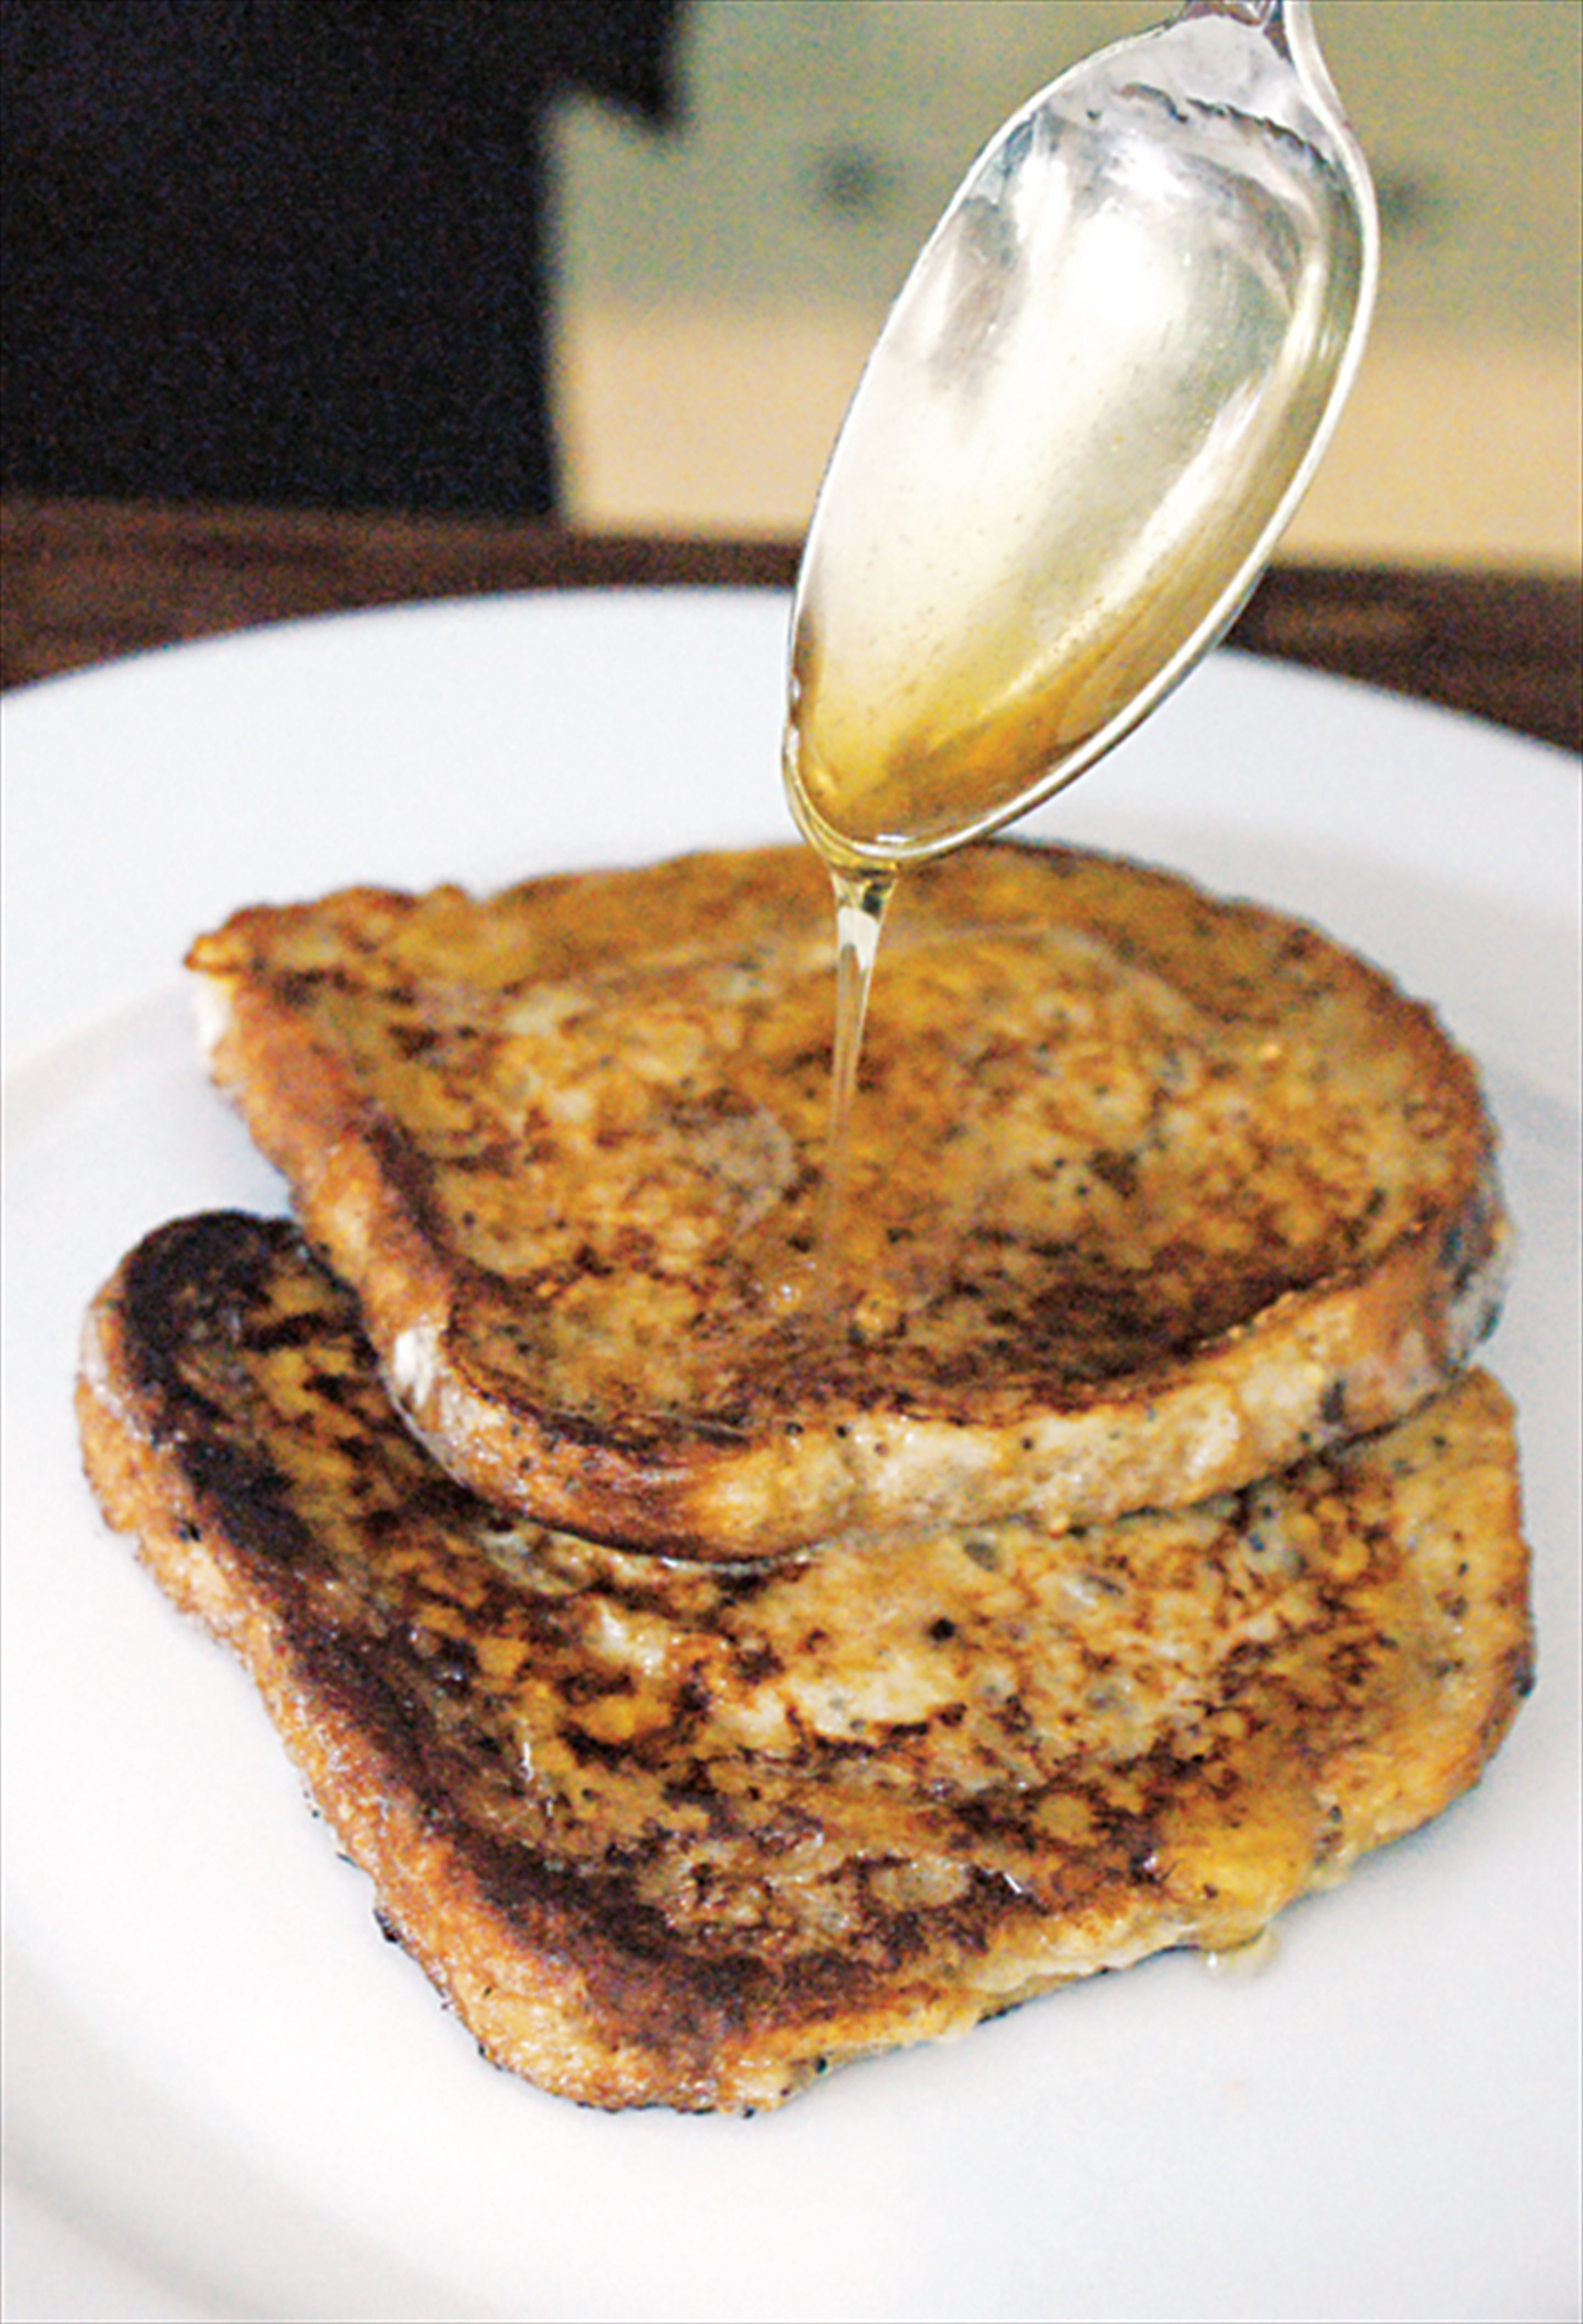 Eggy bread with maple syrup